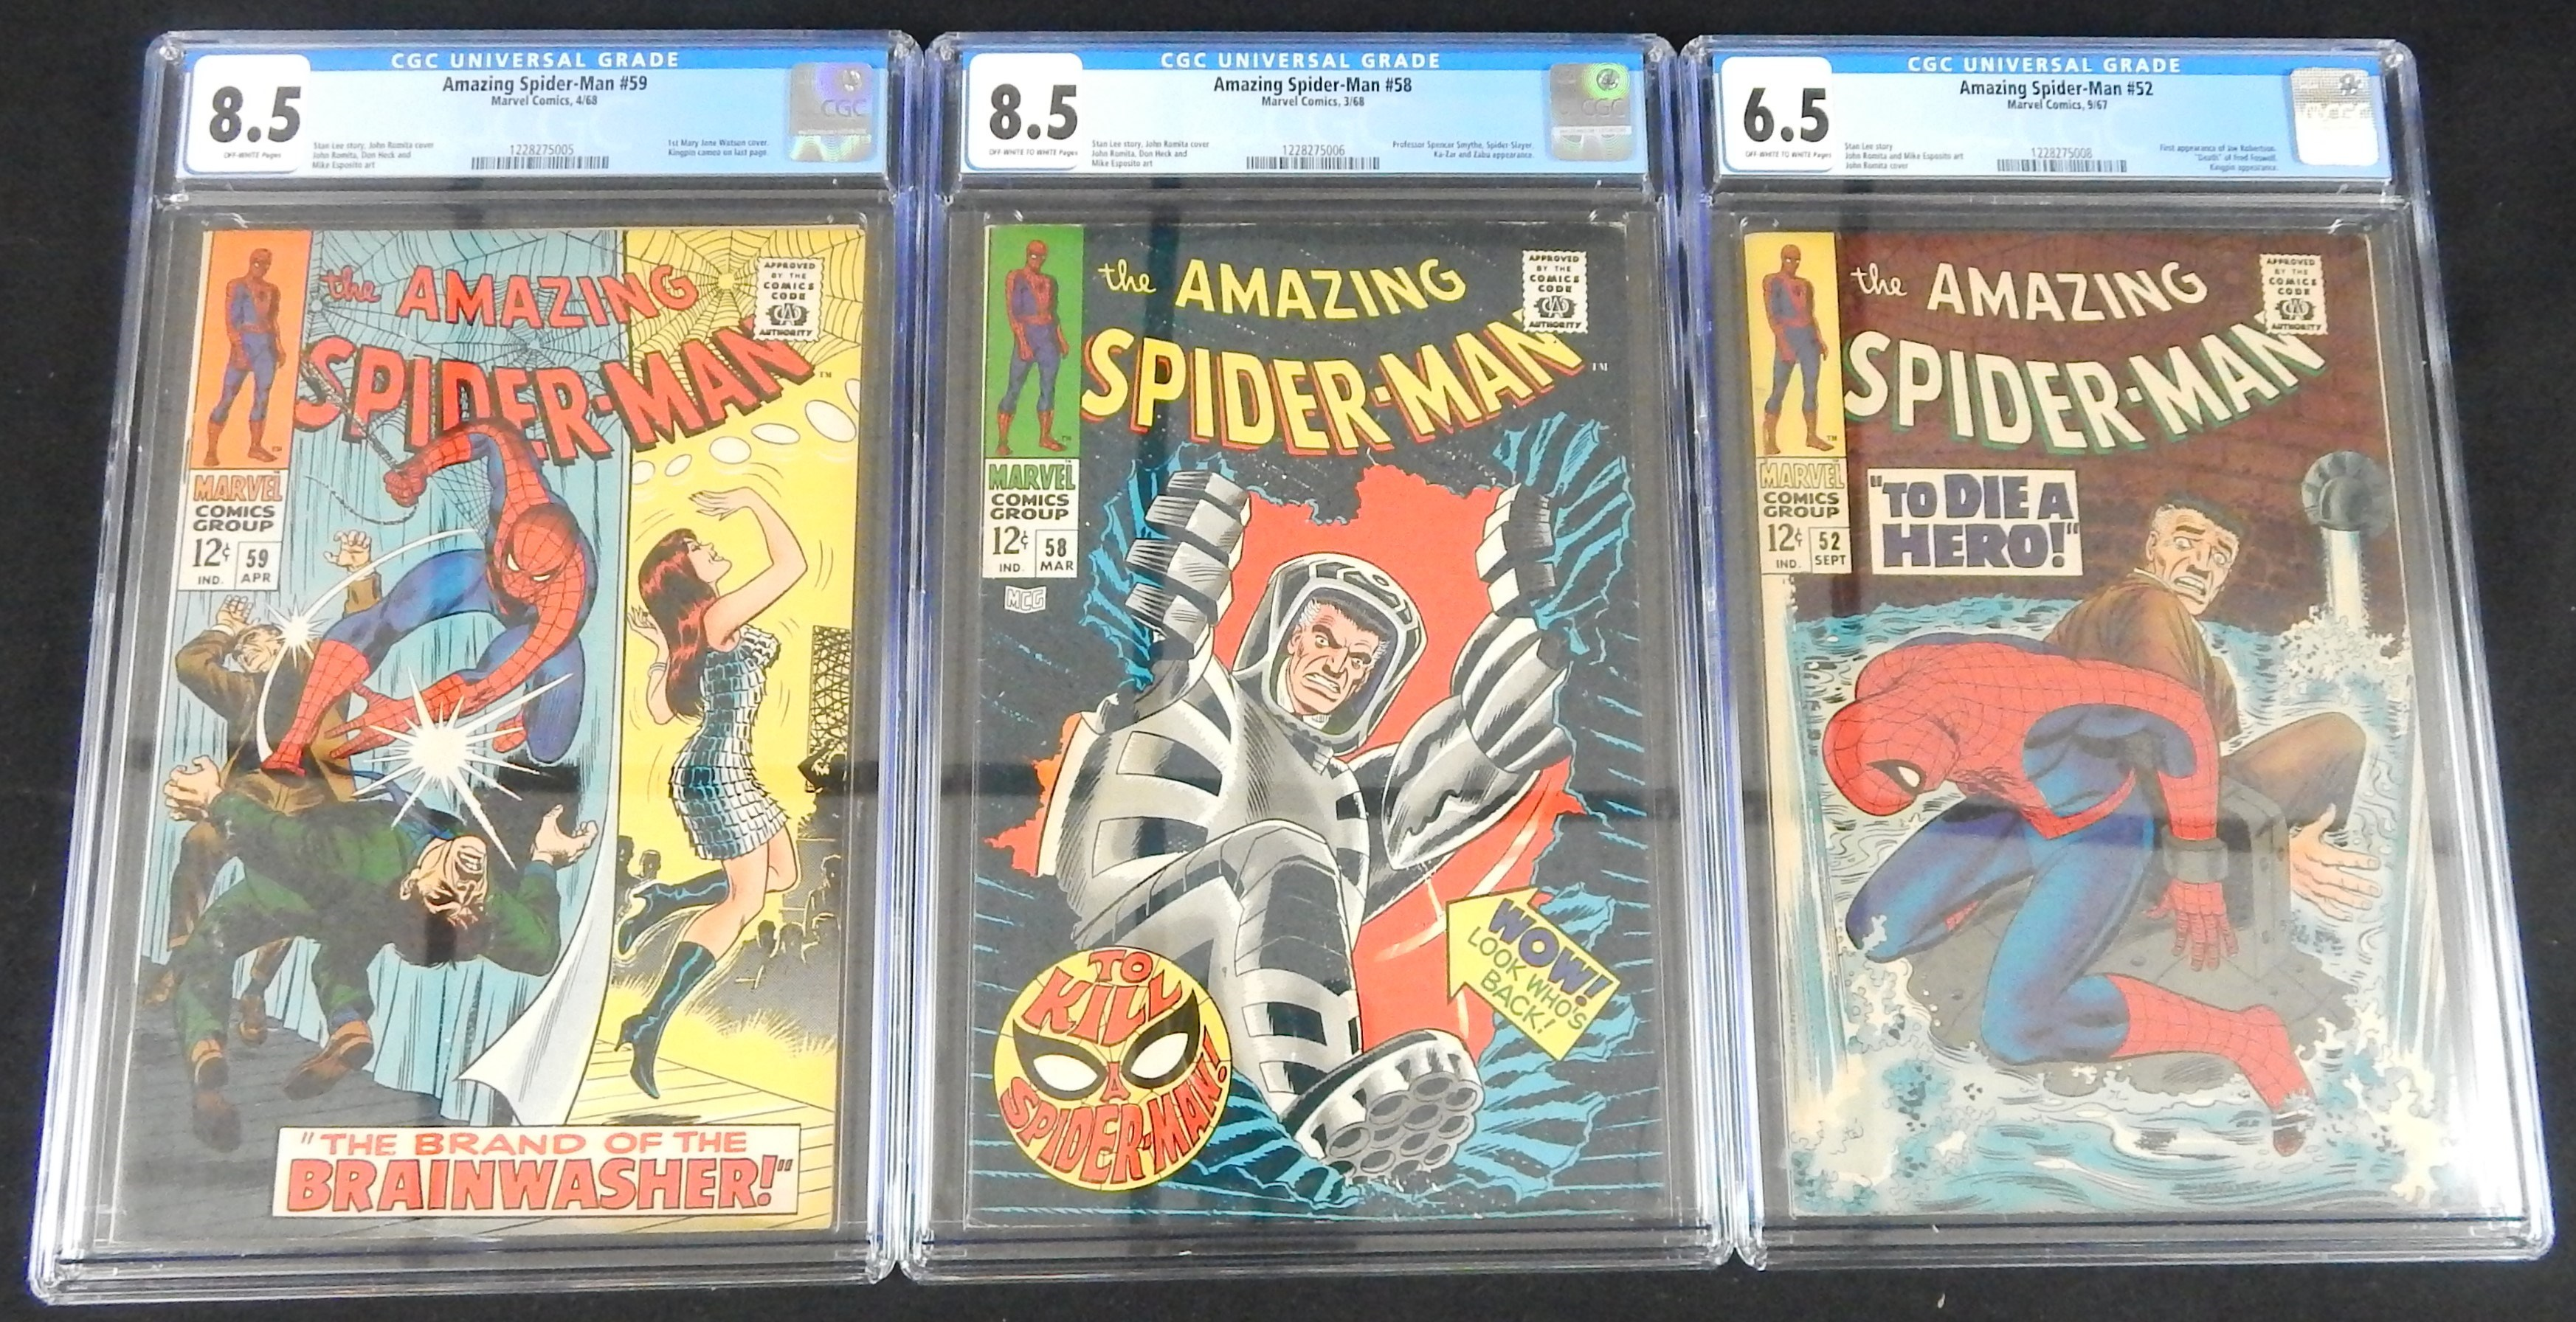 Classic Romita Era Spider-Man CGC Graded Comics (3)